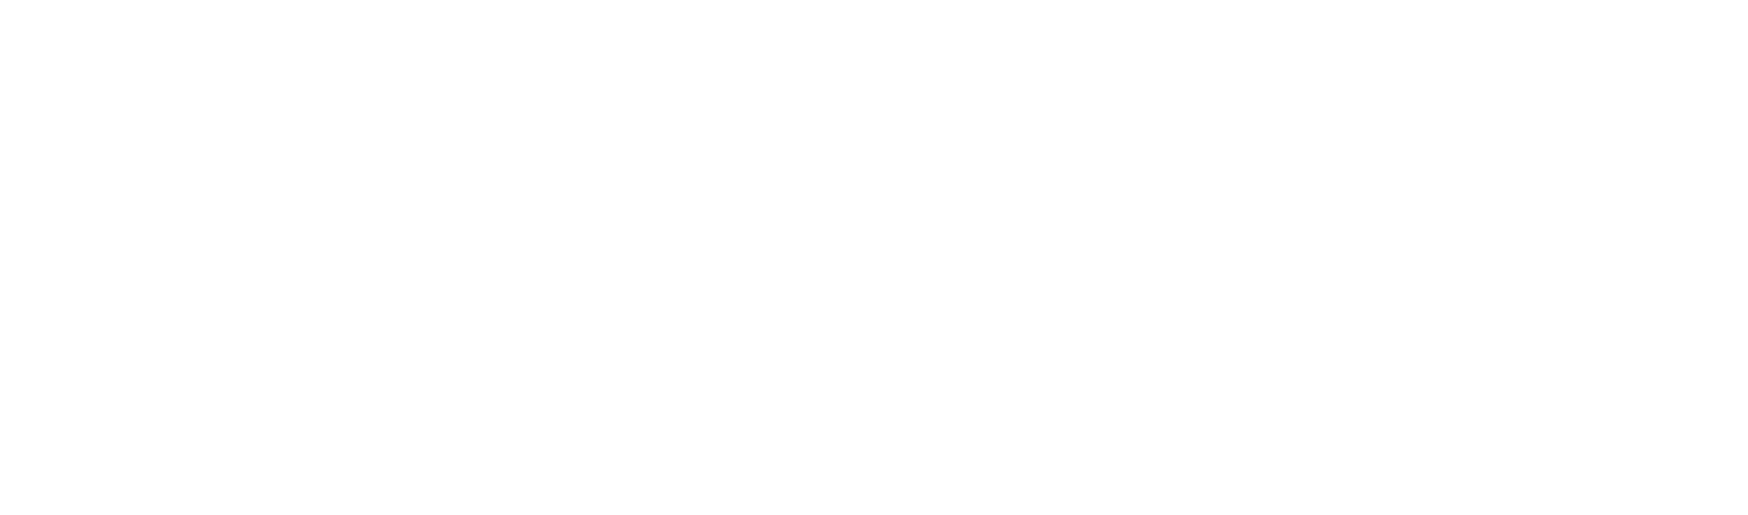 The-Enclave-at-Foxcroft_Logo-options3 (1)-1